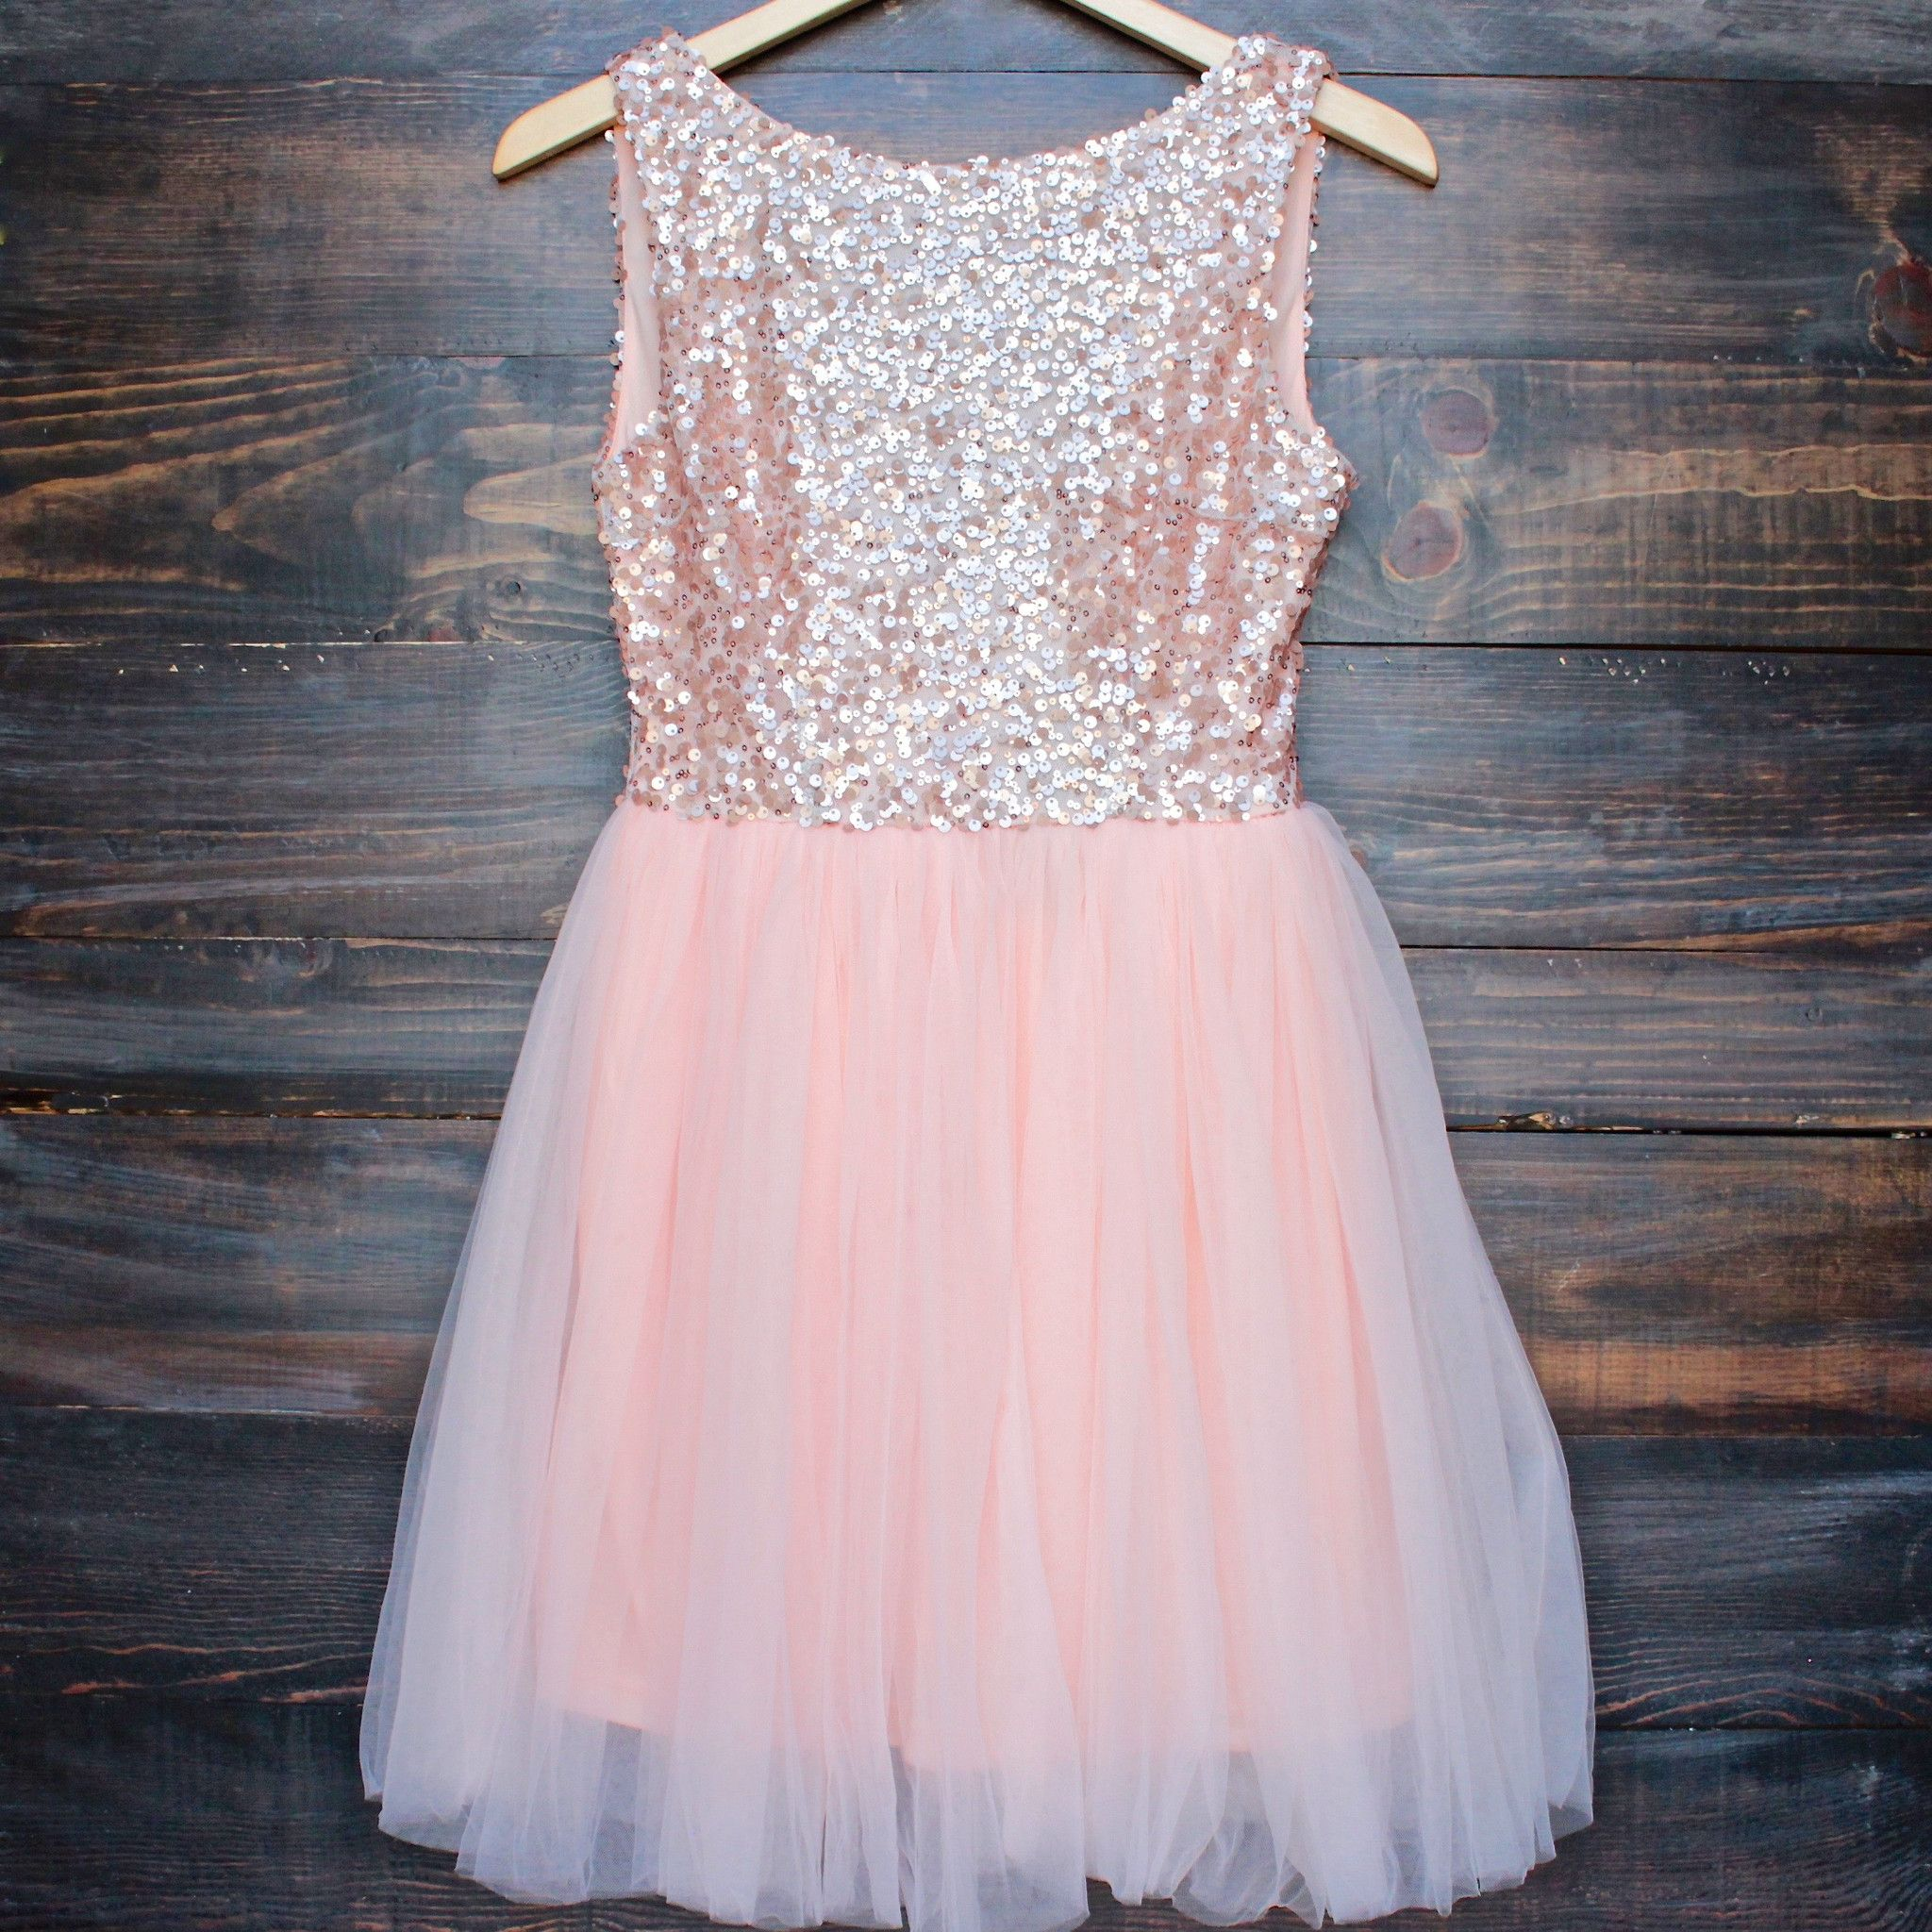 Sugar plum dazzling rose pink sequin darling party dress peachy